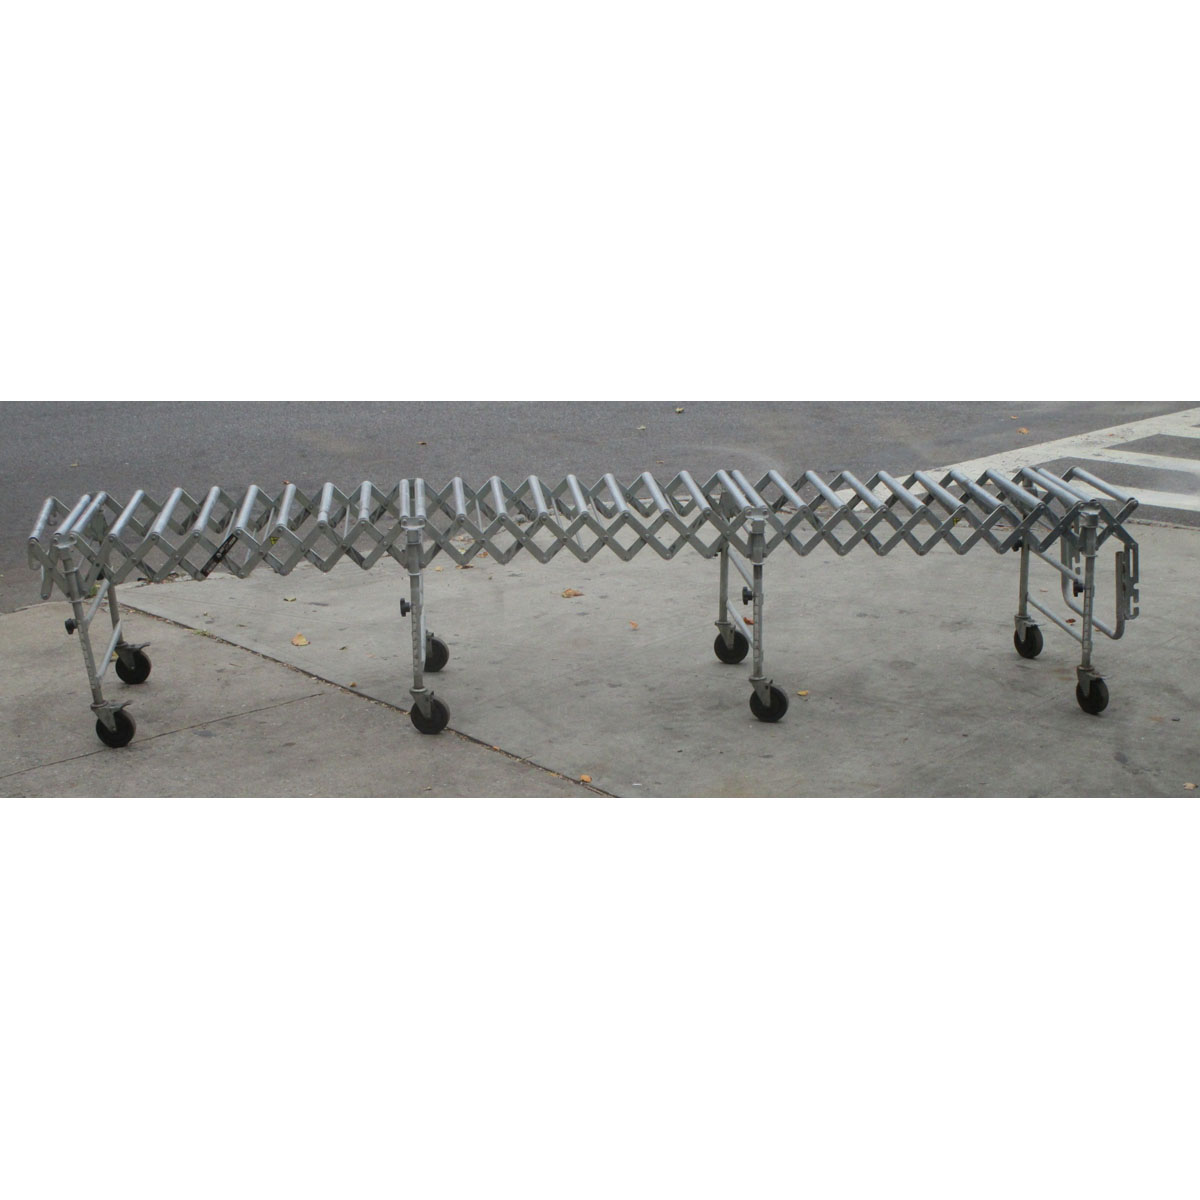 Nestafle-Roller-Conveyor-Expandable-Up-To-Feet-Very Product Image 1555